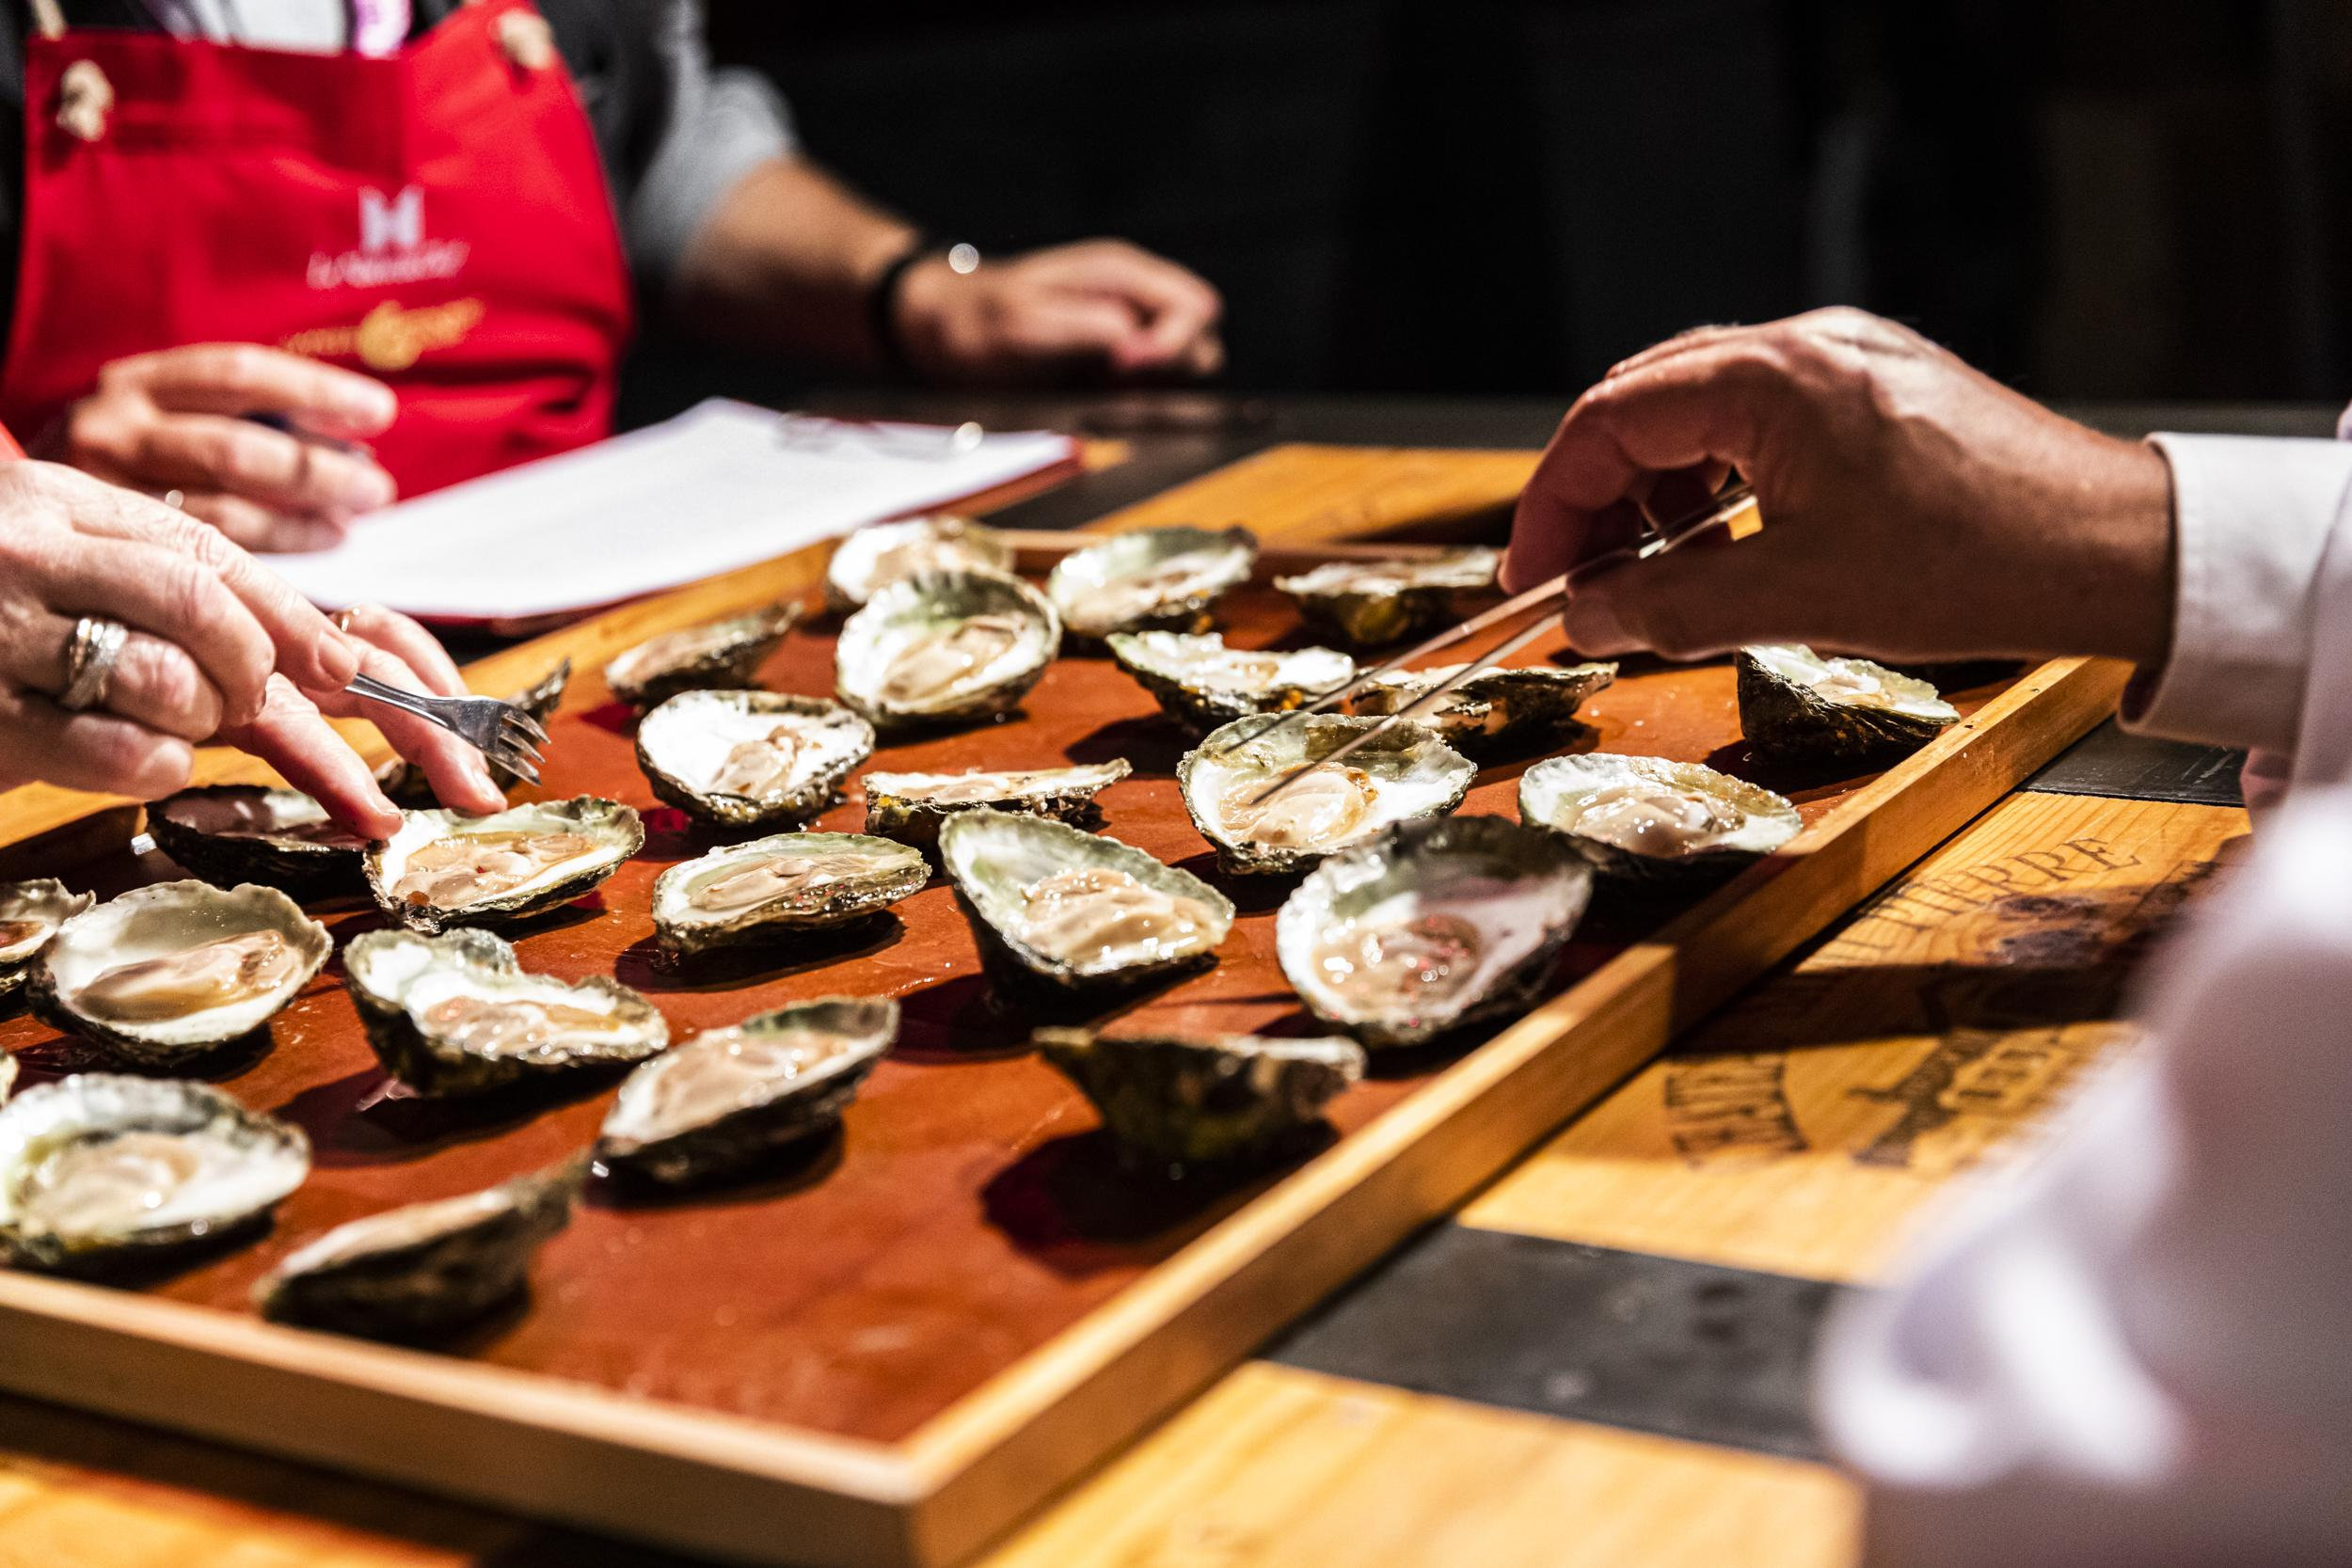 Dit was the Oyster Opening World Cup op Gastvrij Rotterdam 2019!